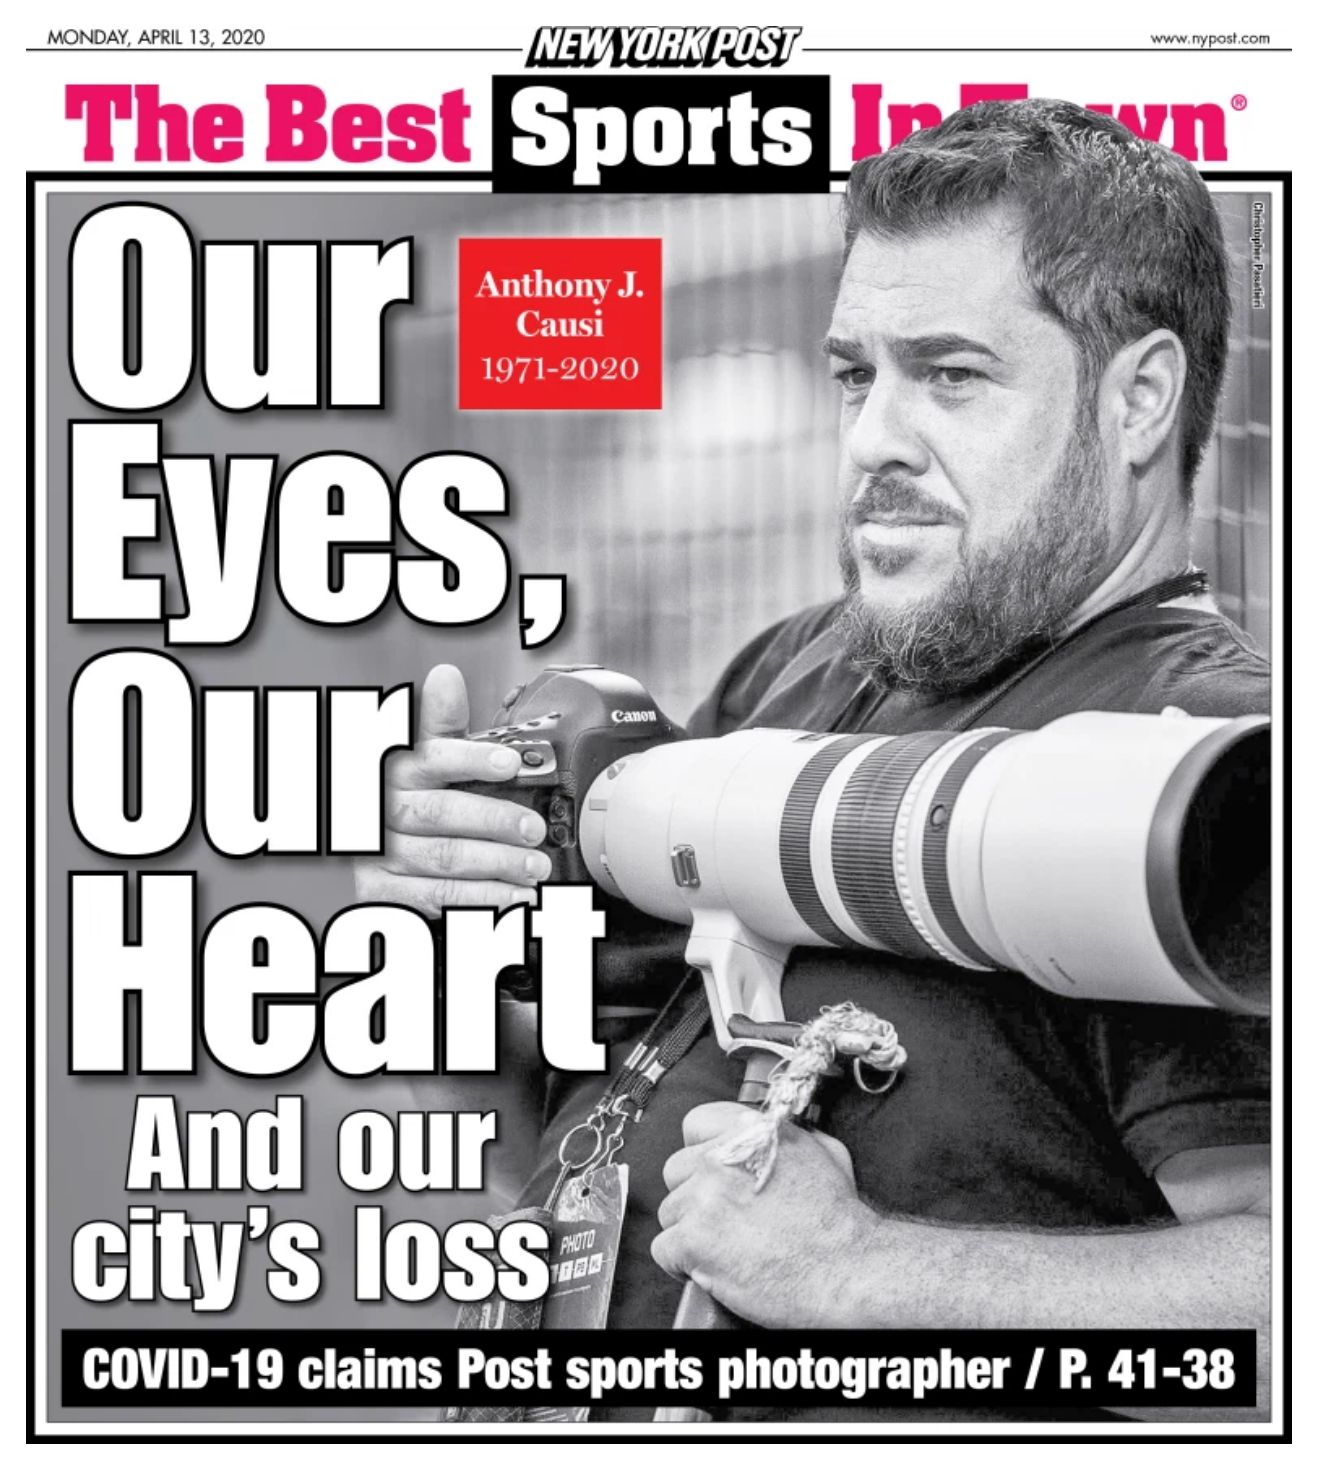 The New York Post honored its long-time sports photographer Anthony Causi, who has died of COVID-19 at the age of 48, with th